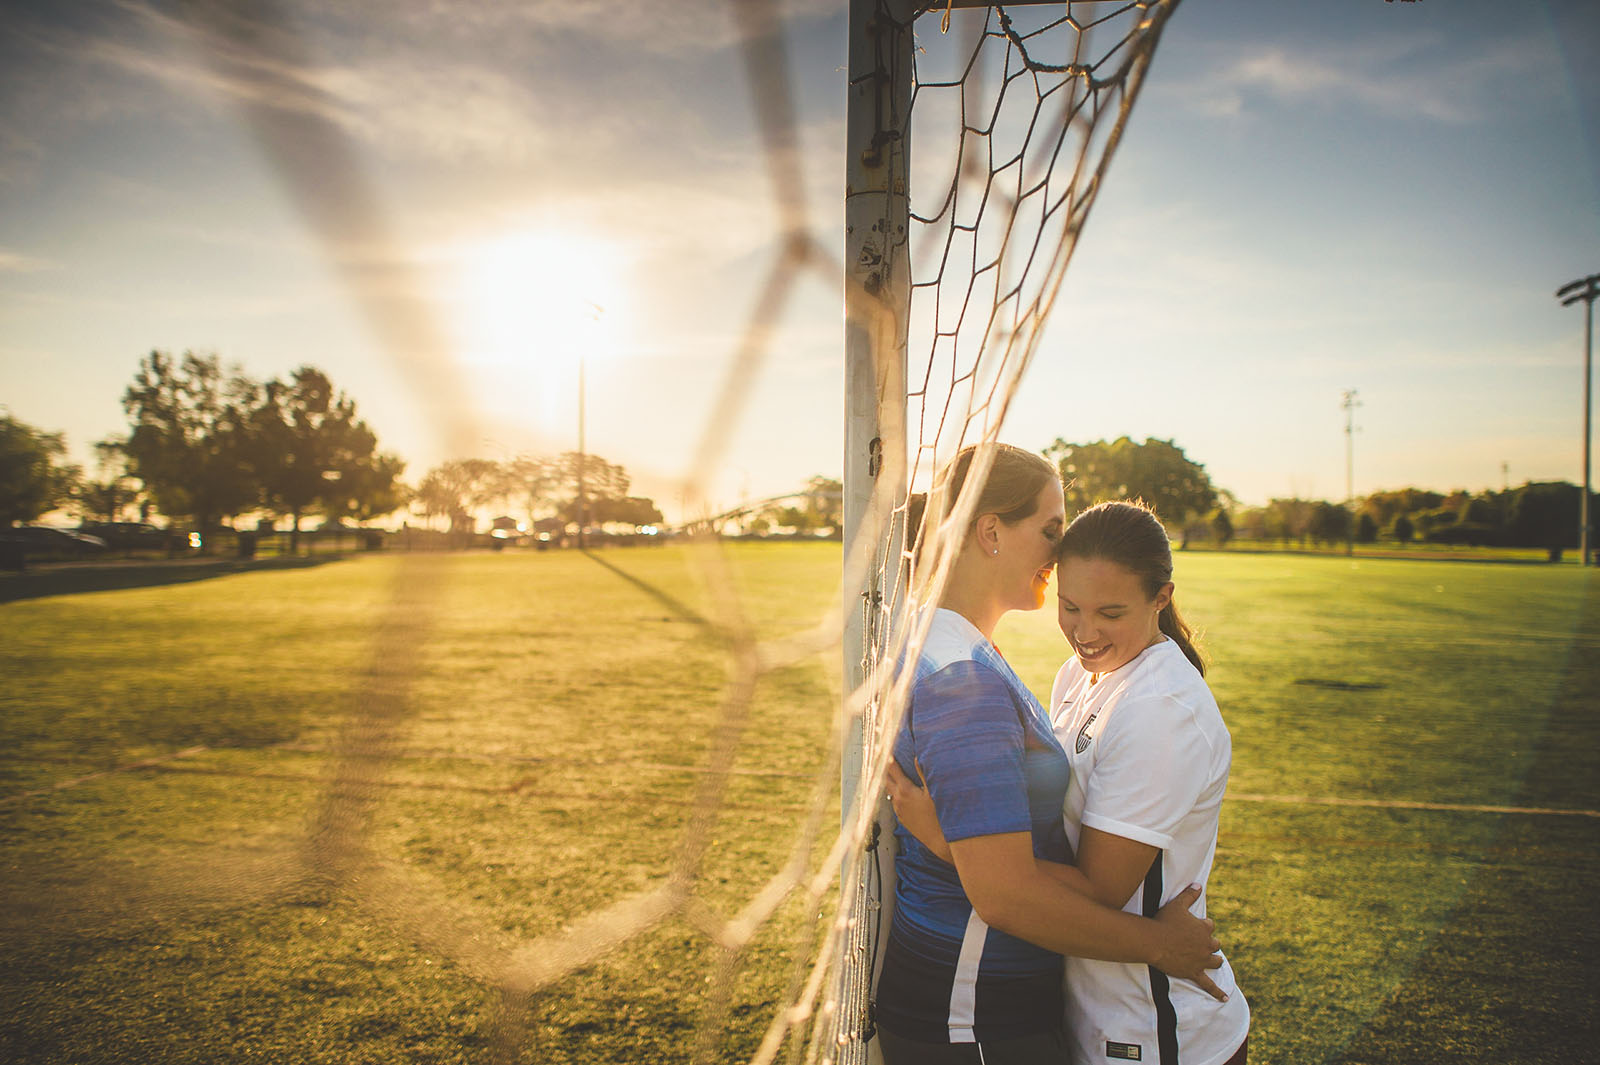 06 sun rising in lincoln park - Kim + Angie // Lincoln Park Engagement Session